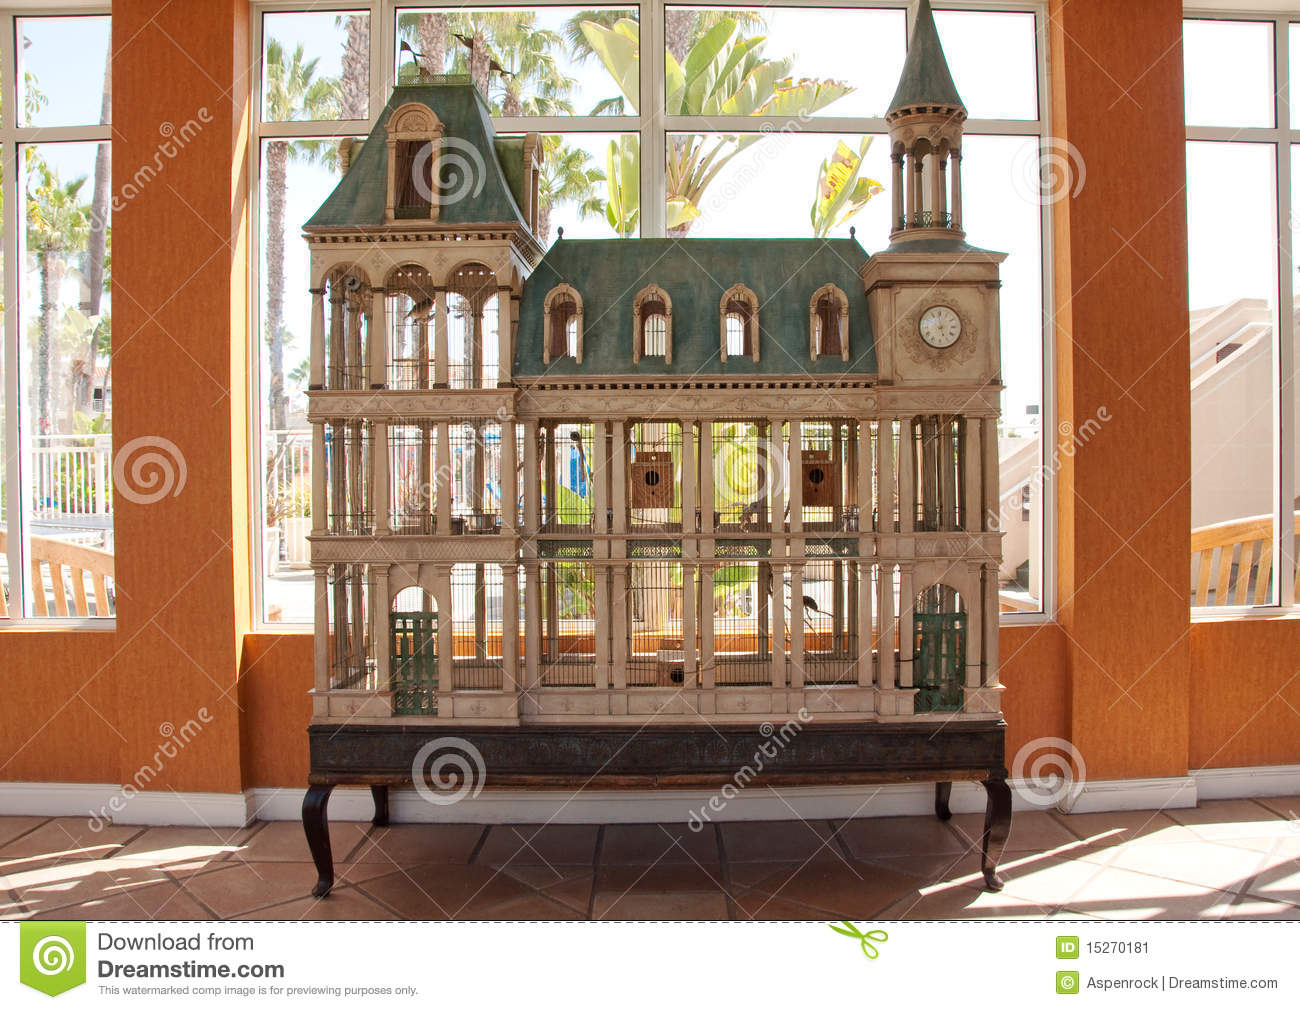 Window bird house - Detailed Four French Story Style Tower Wood House Built Window Living Clock Bird